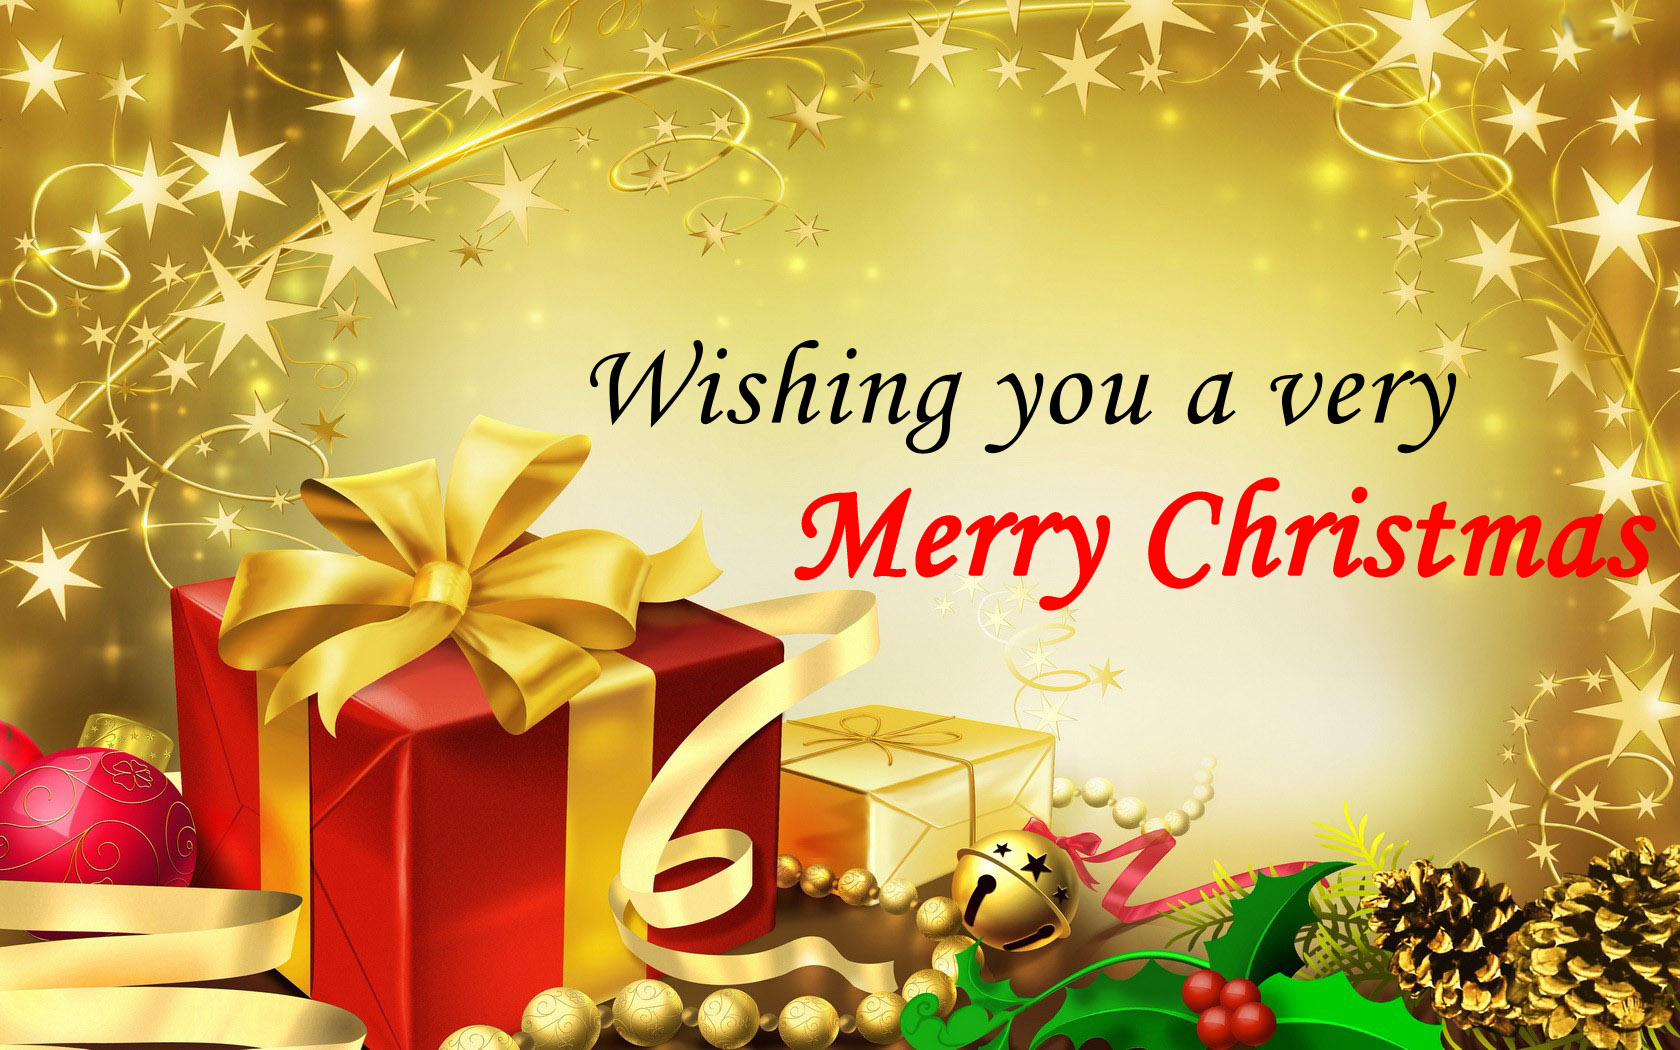 Christmas n new year greetings card happy new year 2015 christmas greetings card wallpaper m4hsunfo